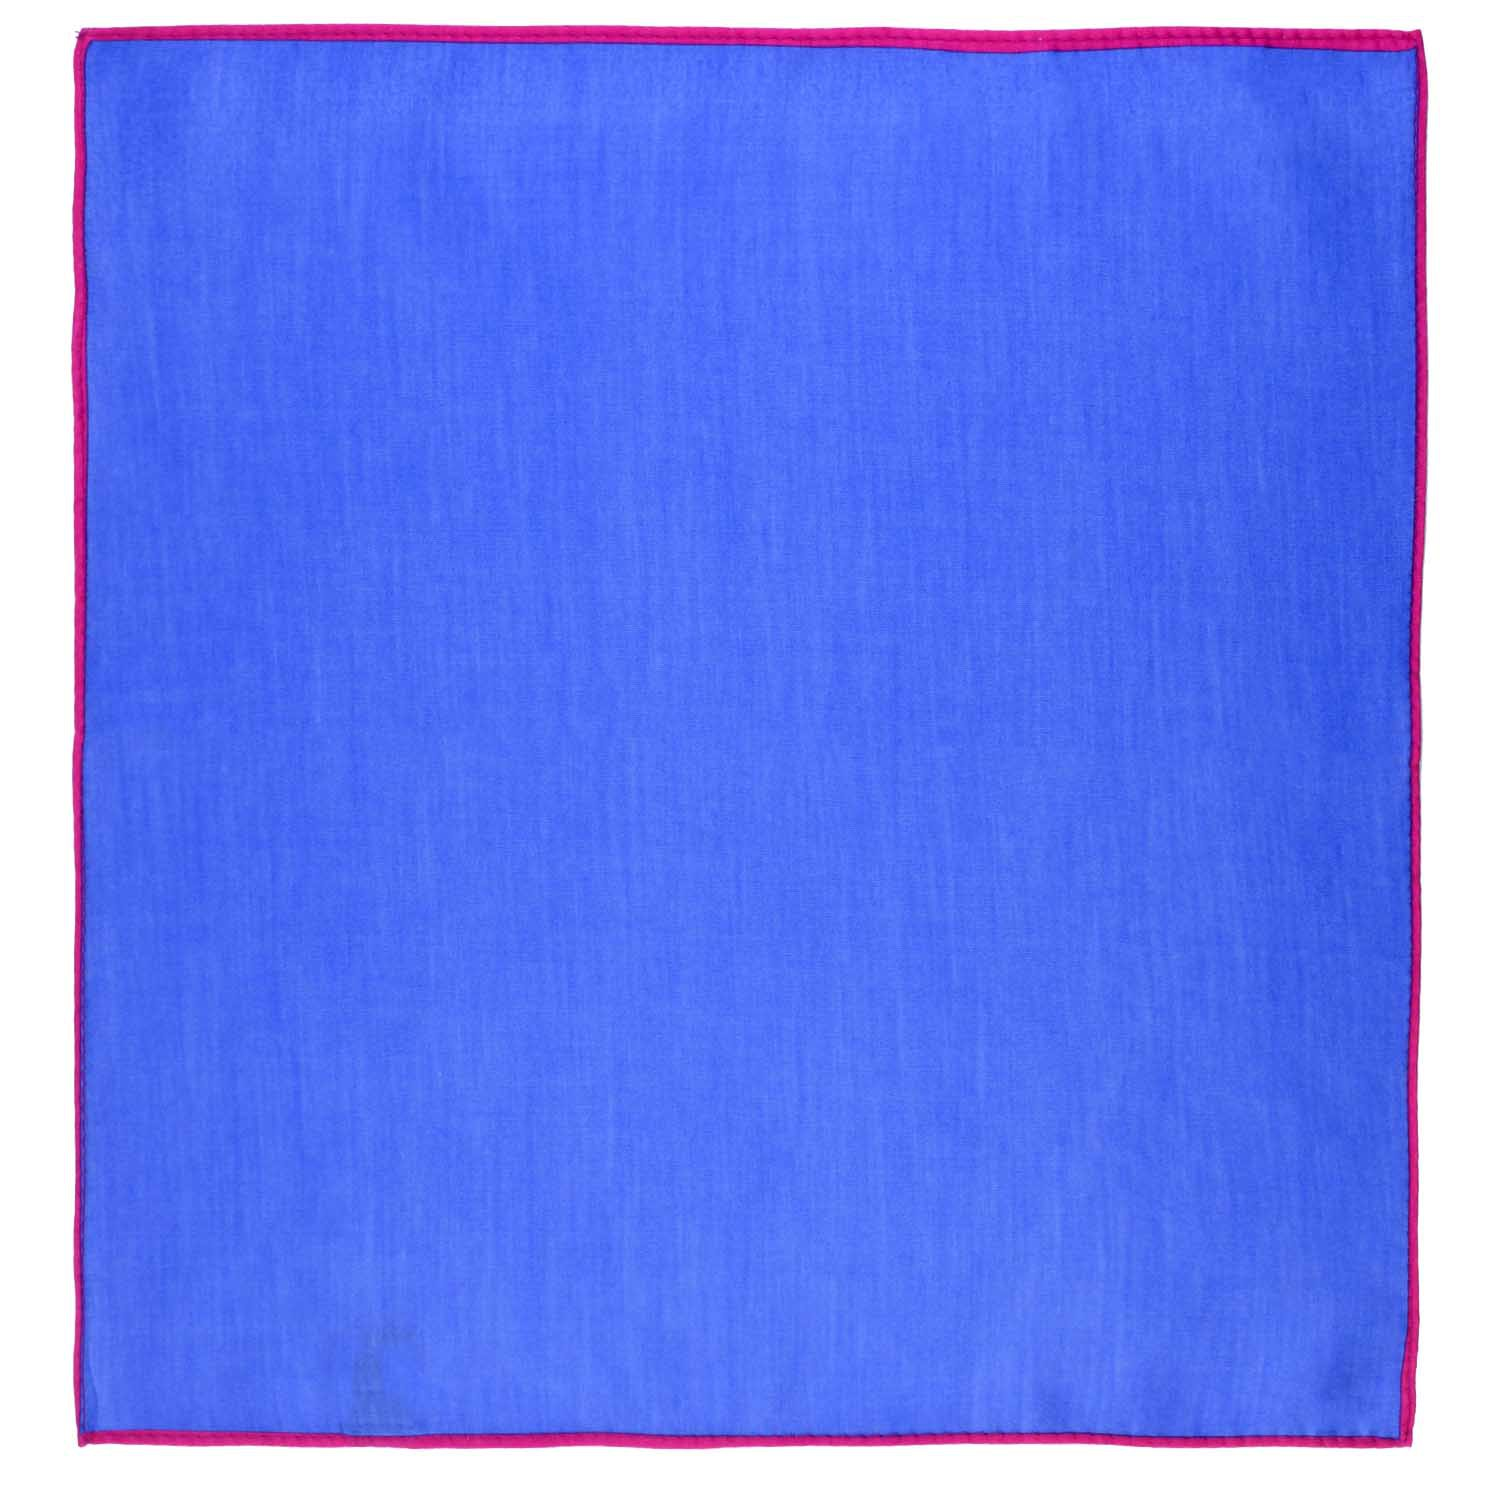 Weldner Solid Deep Blue Pocket Square with Pink Border